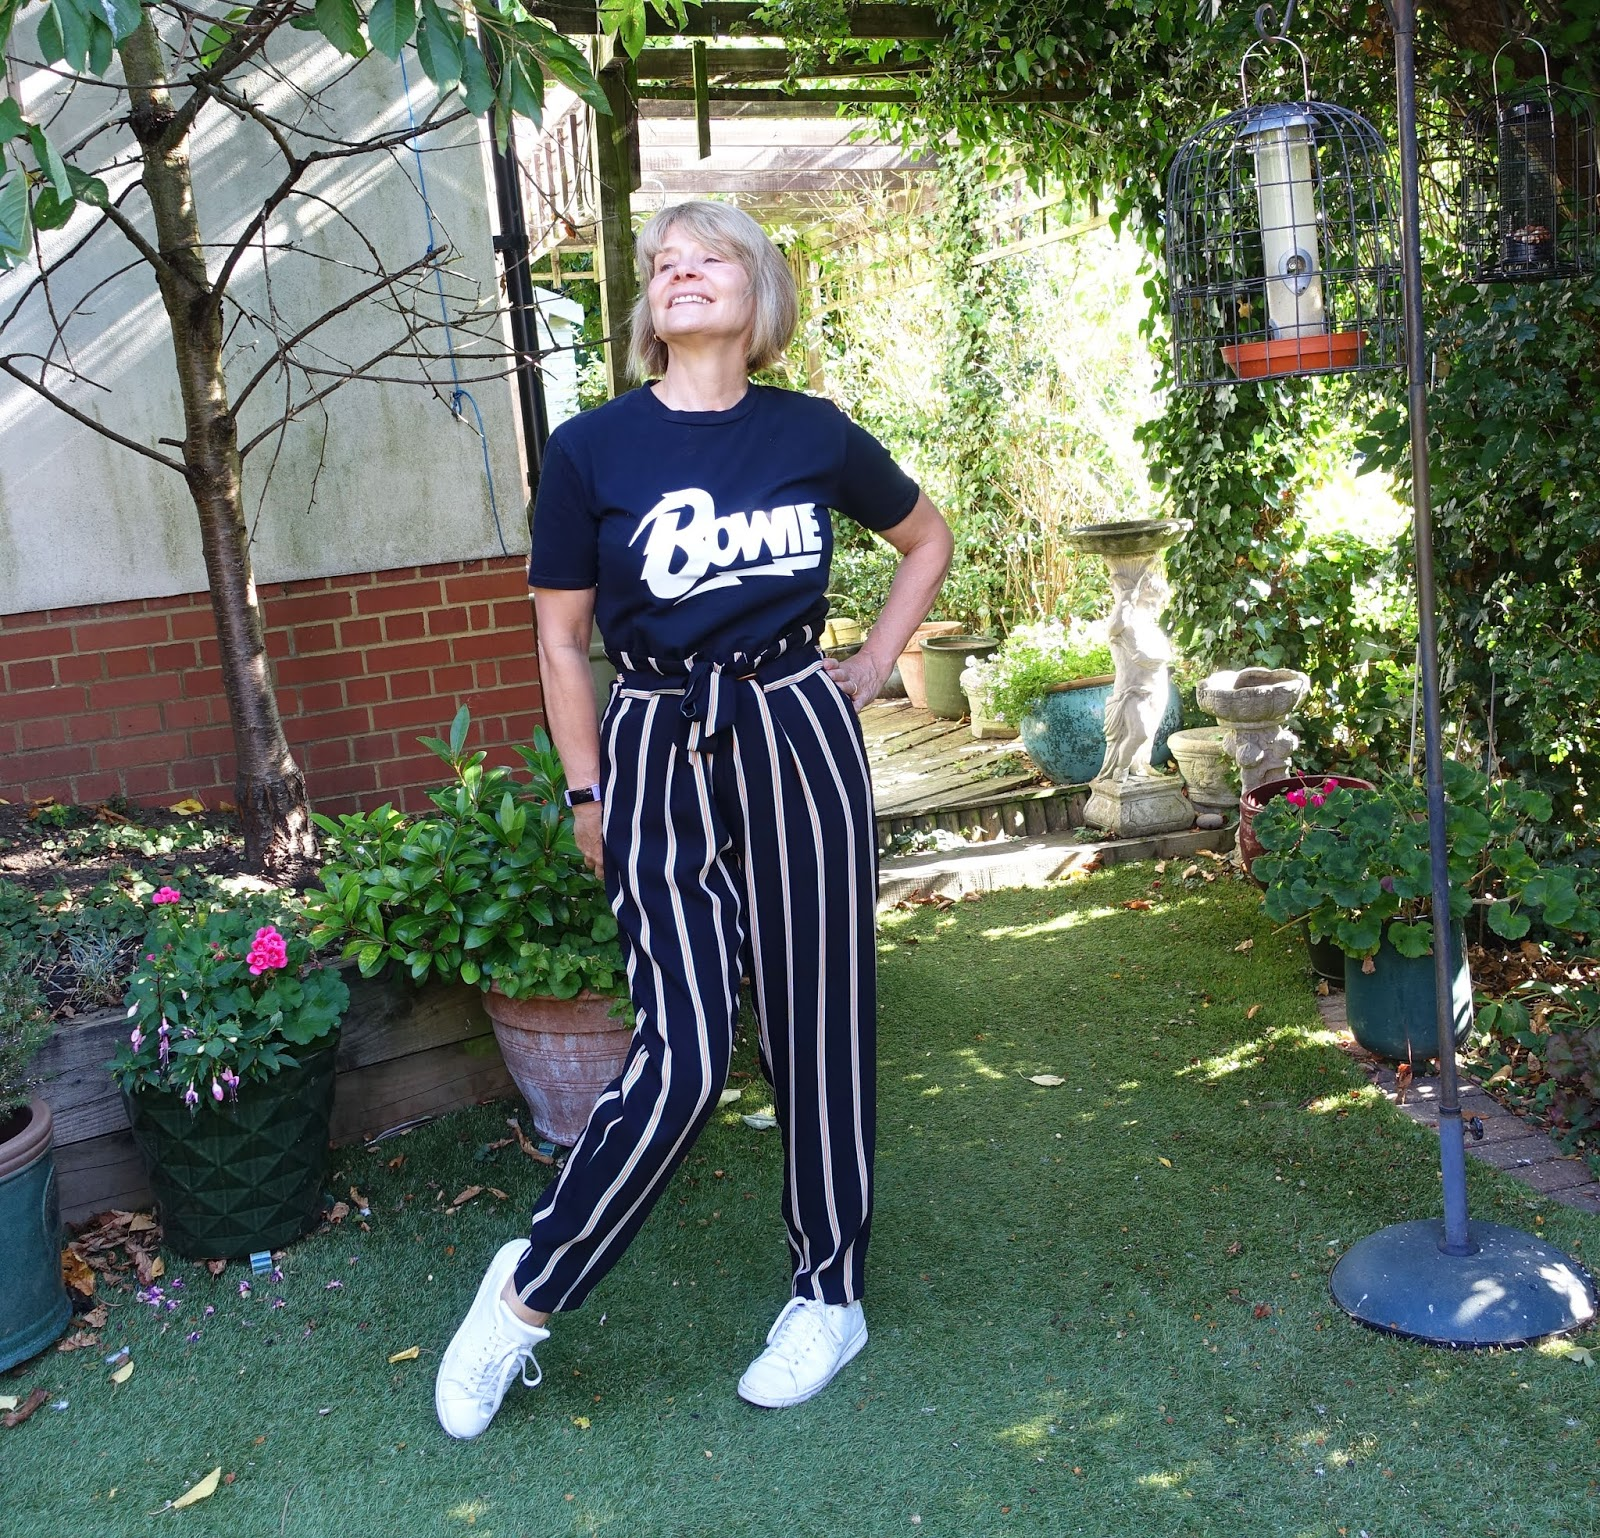 Over 50 style blogger Gail Hanlon from Is This Mutton wearing striped paper bag trousers - black Bowie tee and white Stan Smith trainers